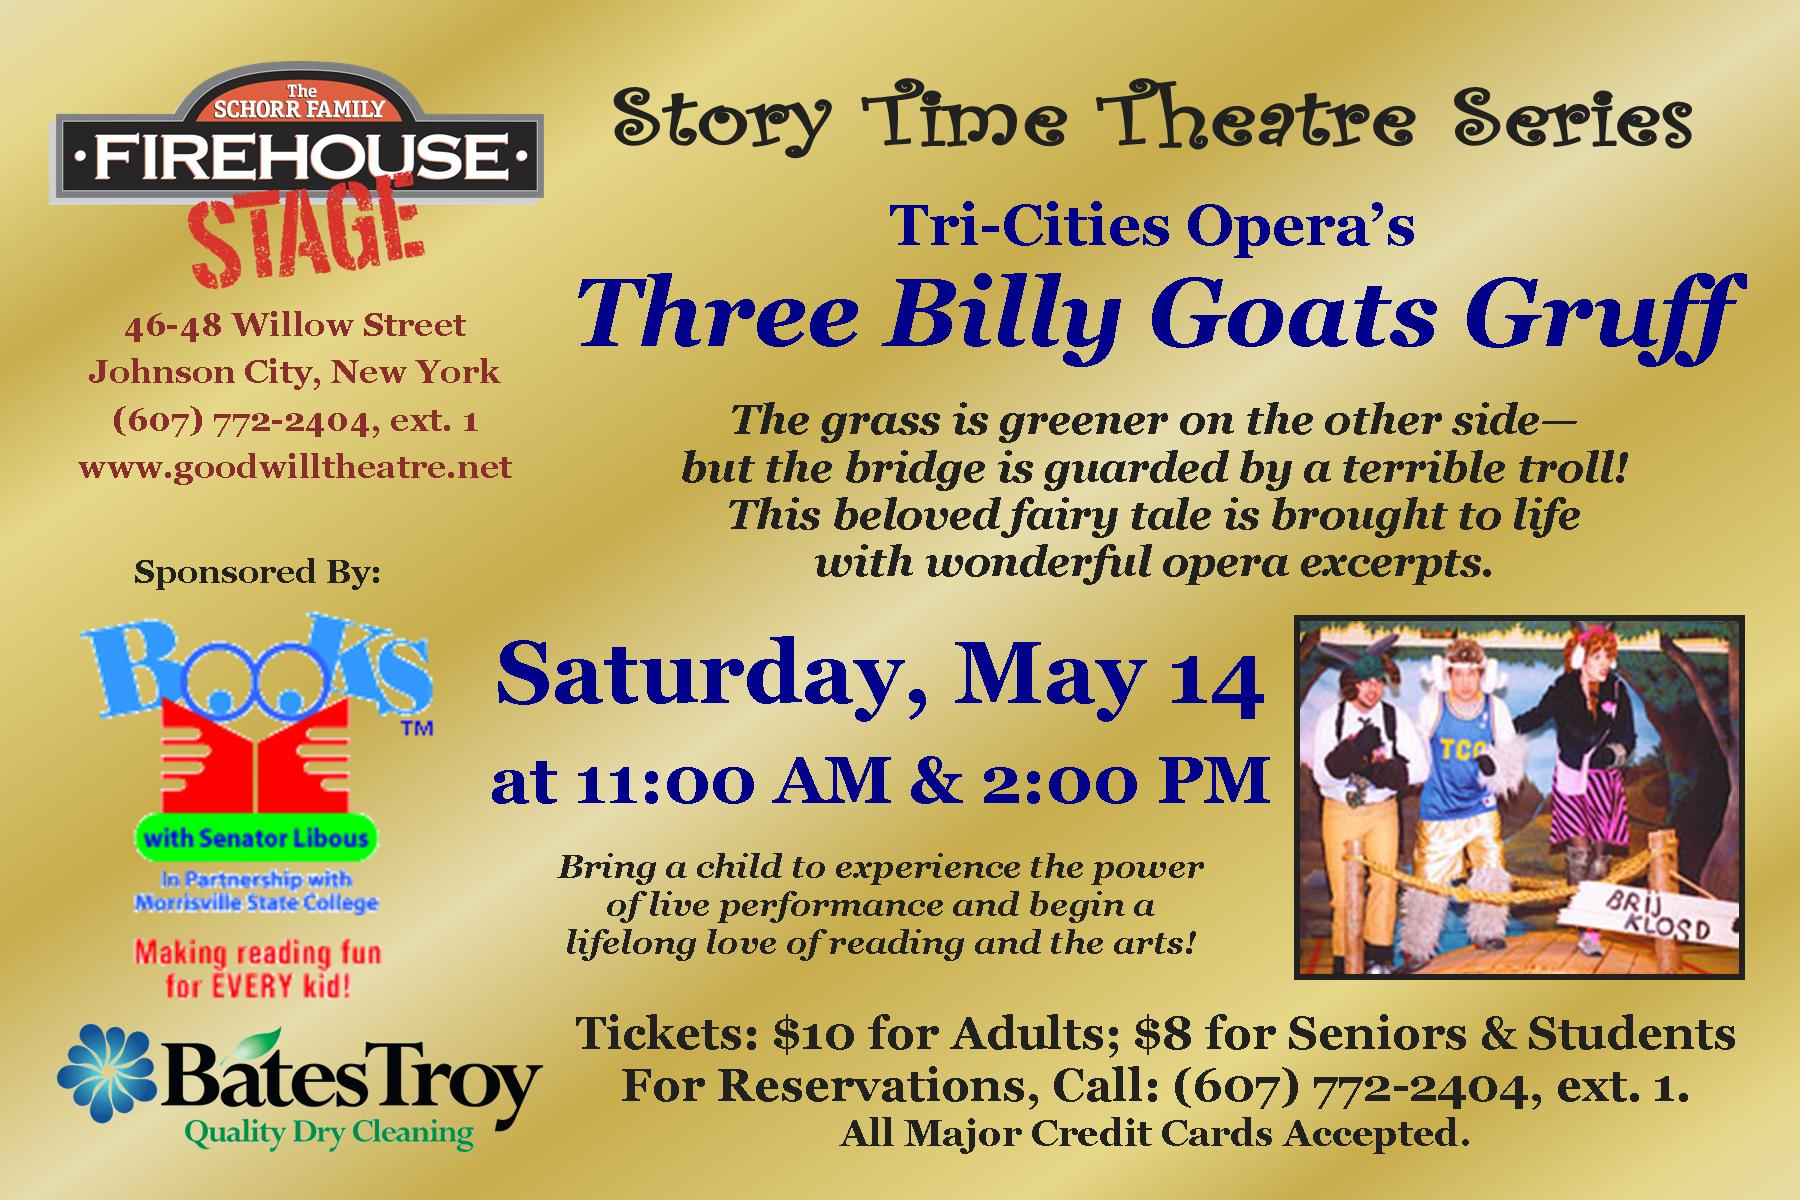 Three Billy Goats Gruff - May 14 at 11:00 AM & 2:00 PM